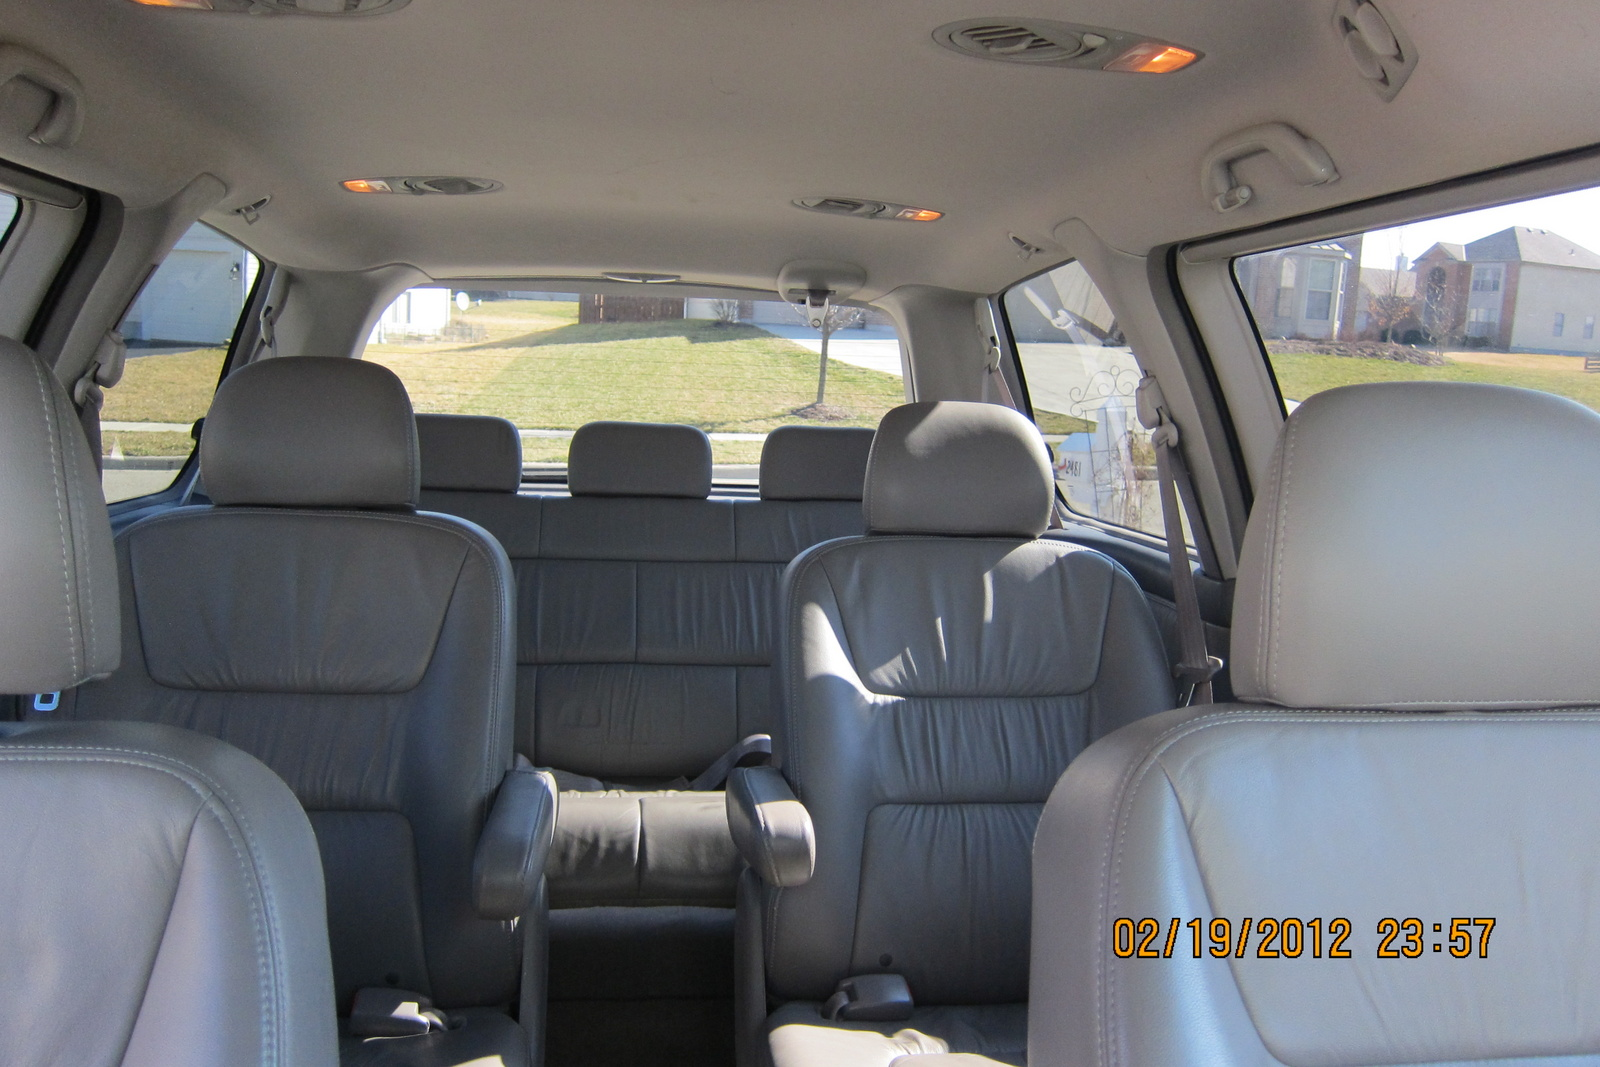 2004 honda odyssey interior pictures cargurus. Black Bedroom Furniture Sets. Home Design Ideas